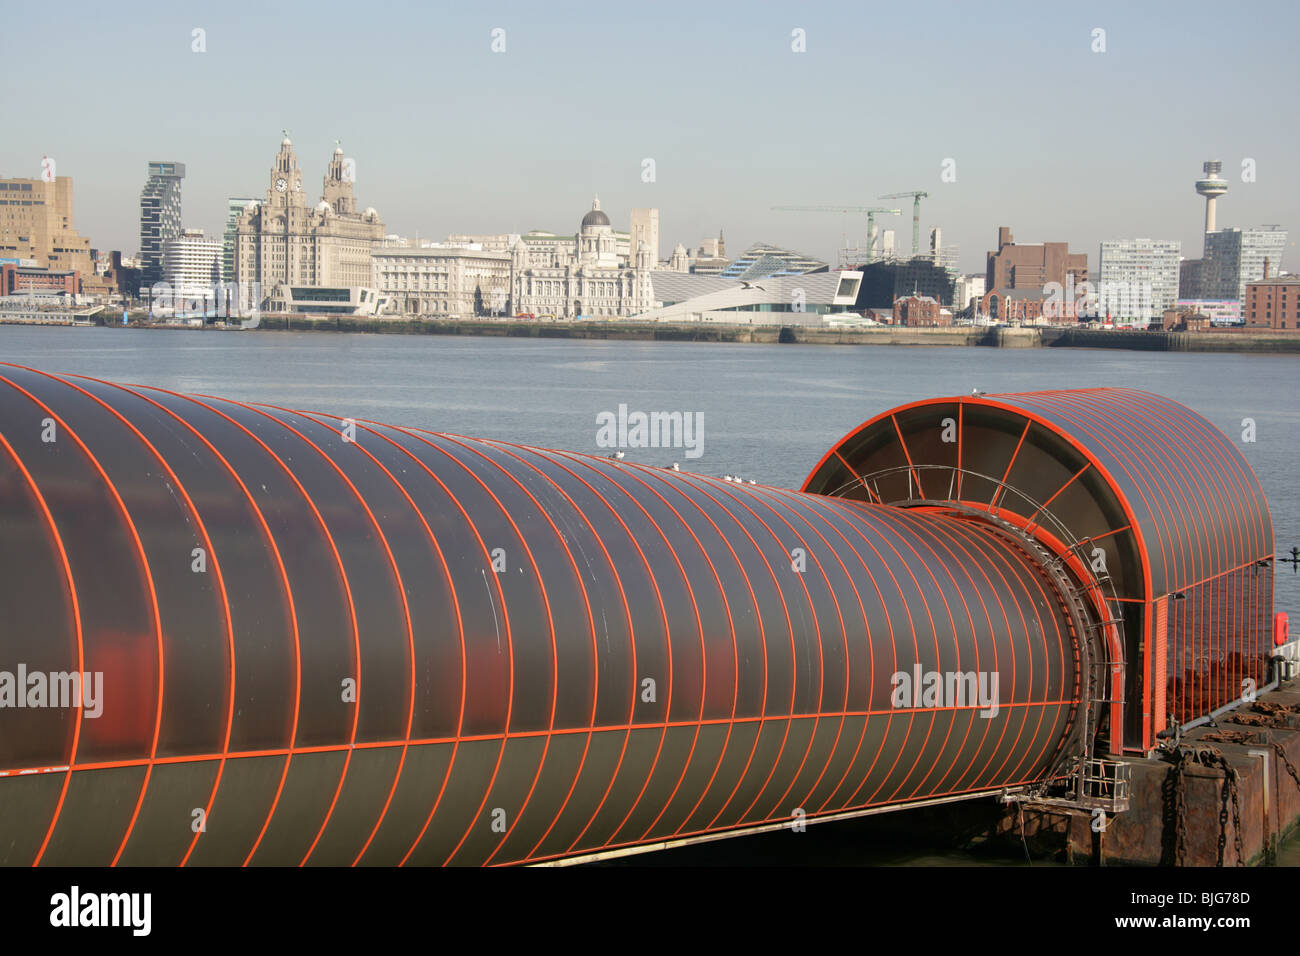 Town of Birkenhead, England. Mersey Ferry landing stage and passenger tunnel at Birkenhead's Woodside Ferry Terminal. - Stock Image